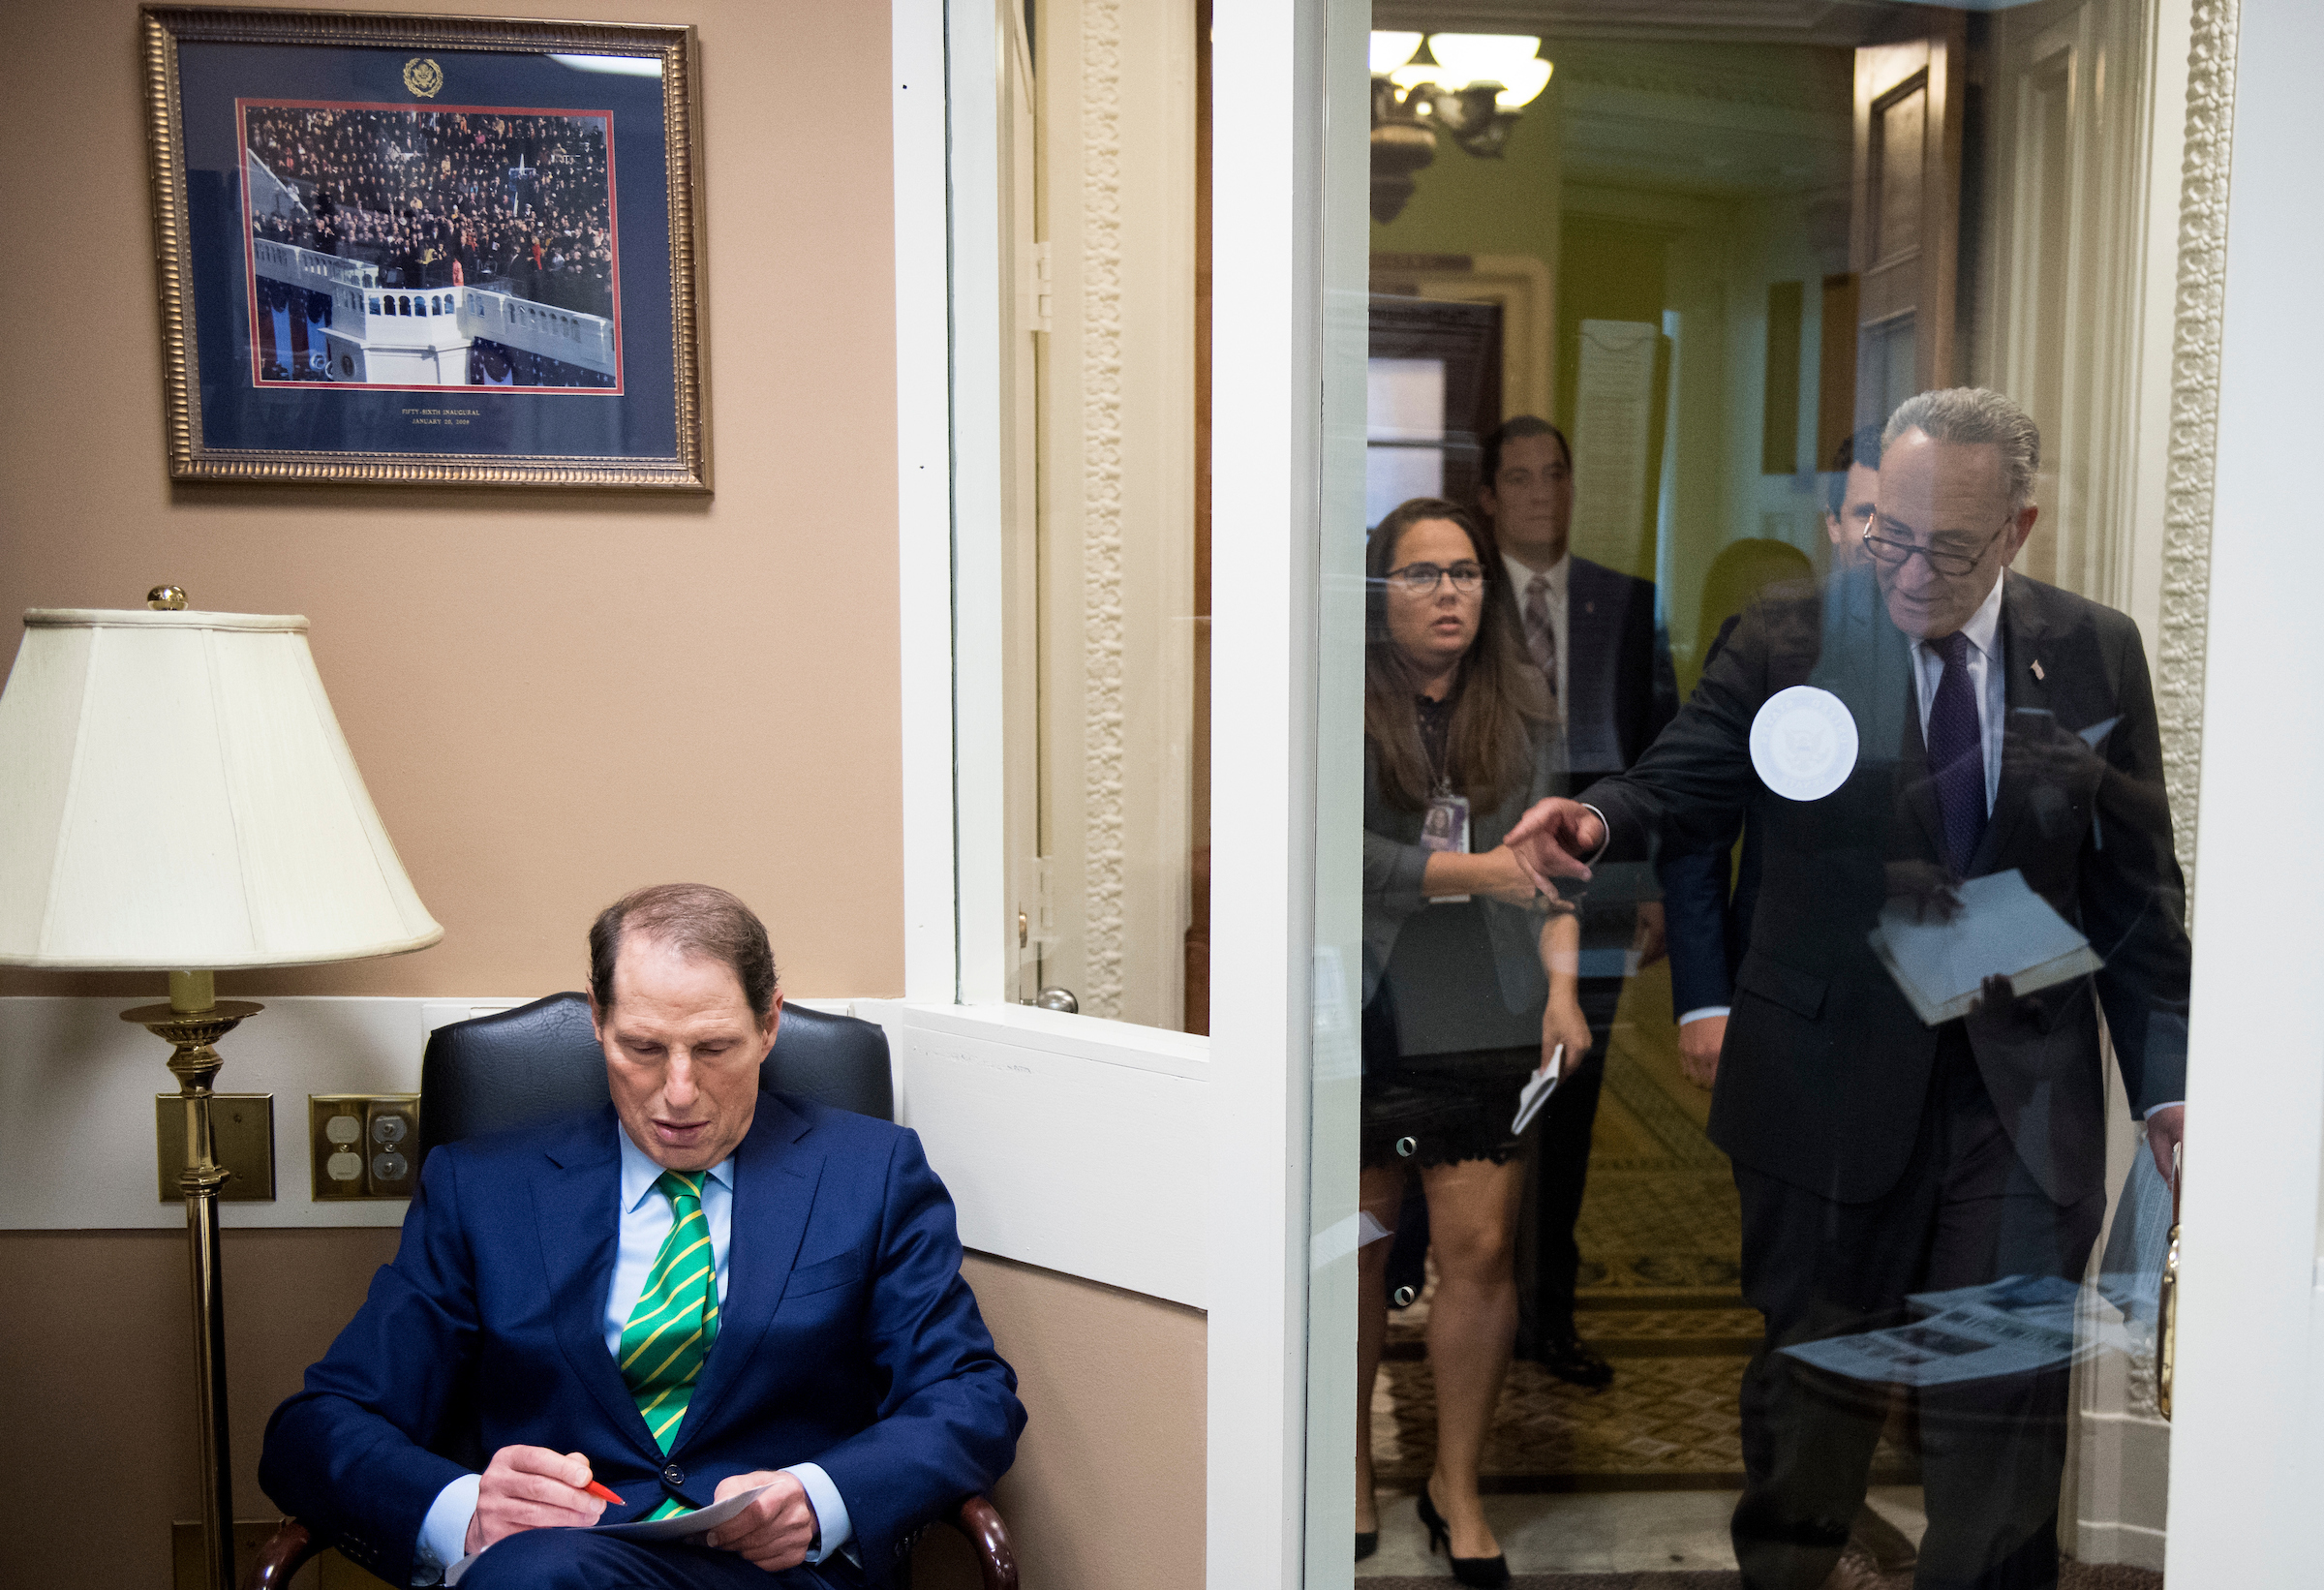 UNITED STATES - SEPTEMBER 27: Sen. Ron Wyden, D-Ore., left, waits for Senate Minority Leader Chuck Schumer, D-N.Y., to arrive for their press conference on the GOP tax reform plan on Wednesday, Sept. 27, 2017. (Photo By Bill Clark/CQ Roll Call)